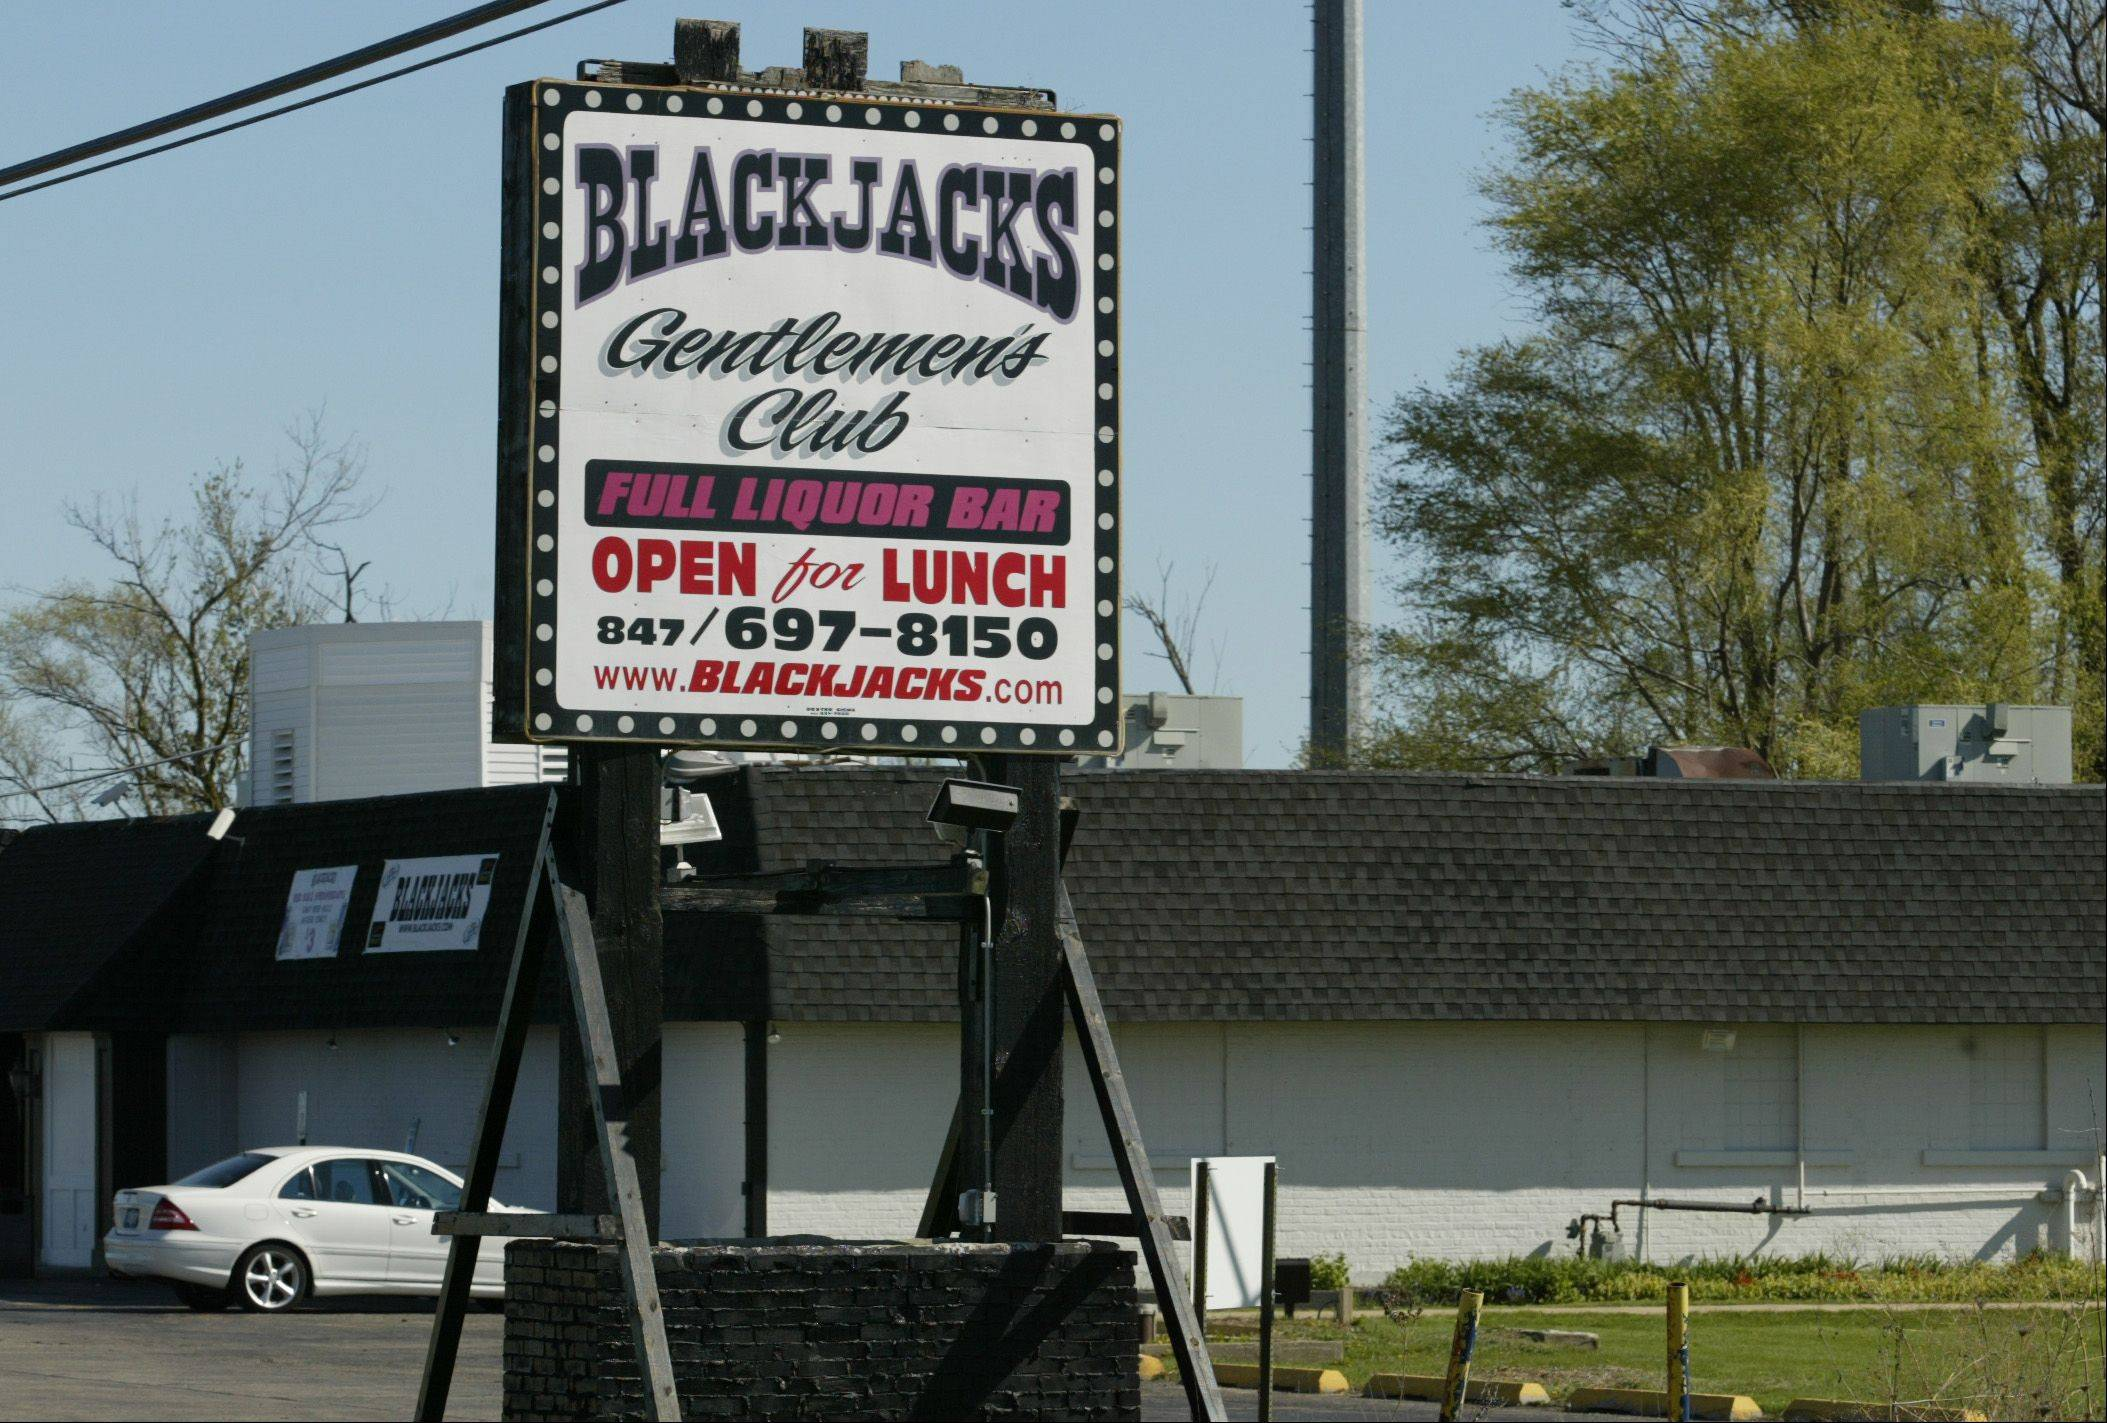 Felons shouldn't own Blackjacks strip club, group tells Kane board